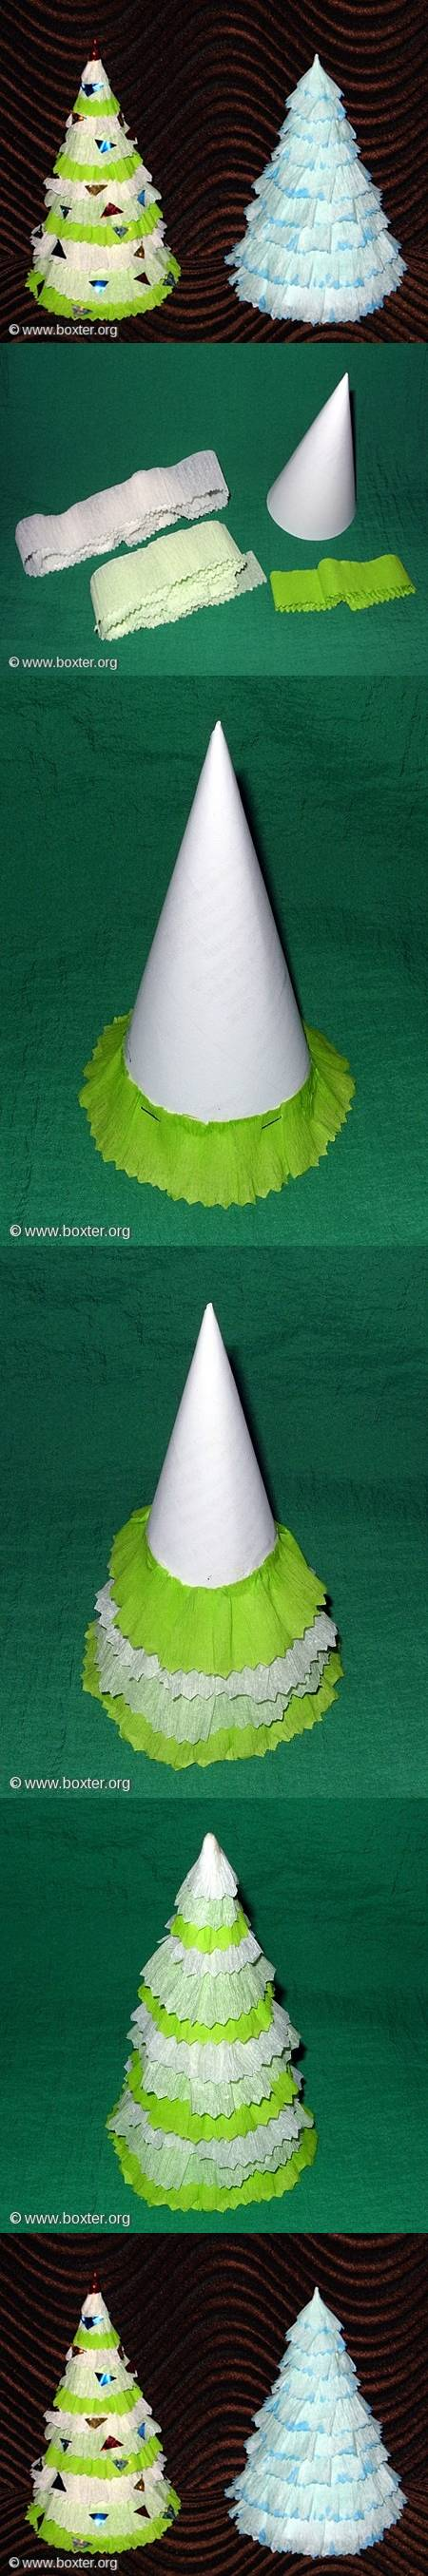 diy-crepe-paper-christmas-tree Step by step Christmas Tree Crafts for Kids to Make